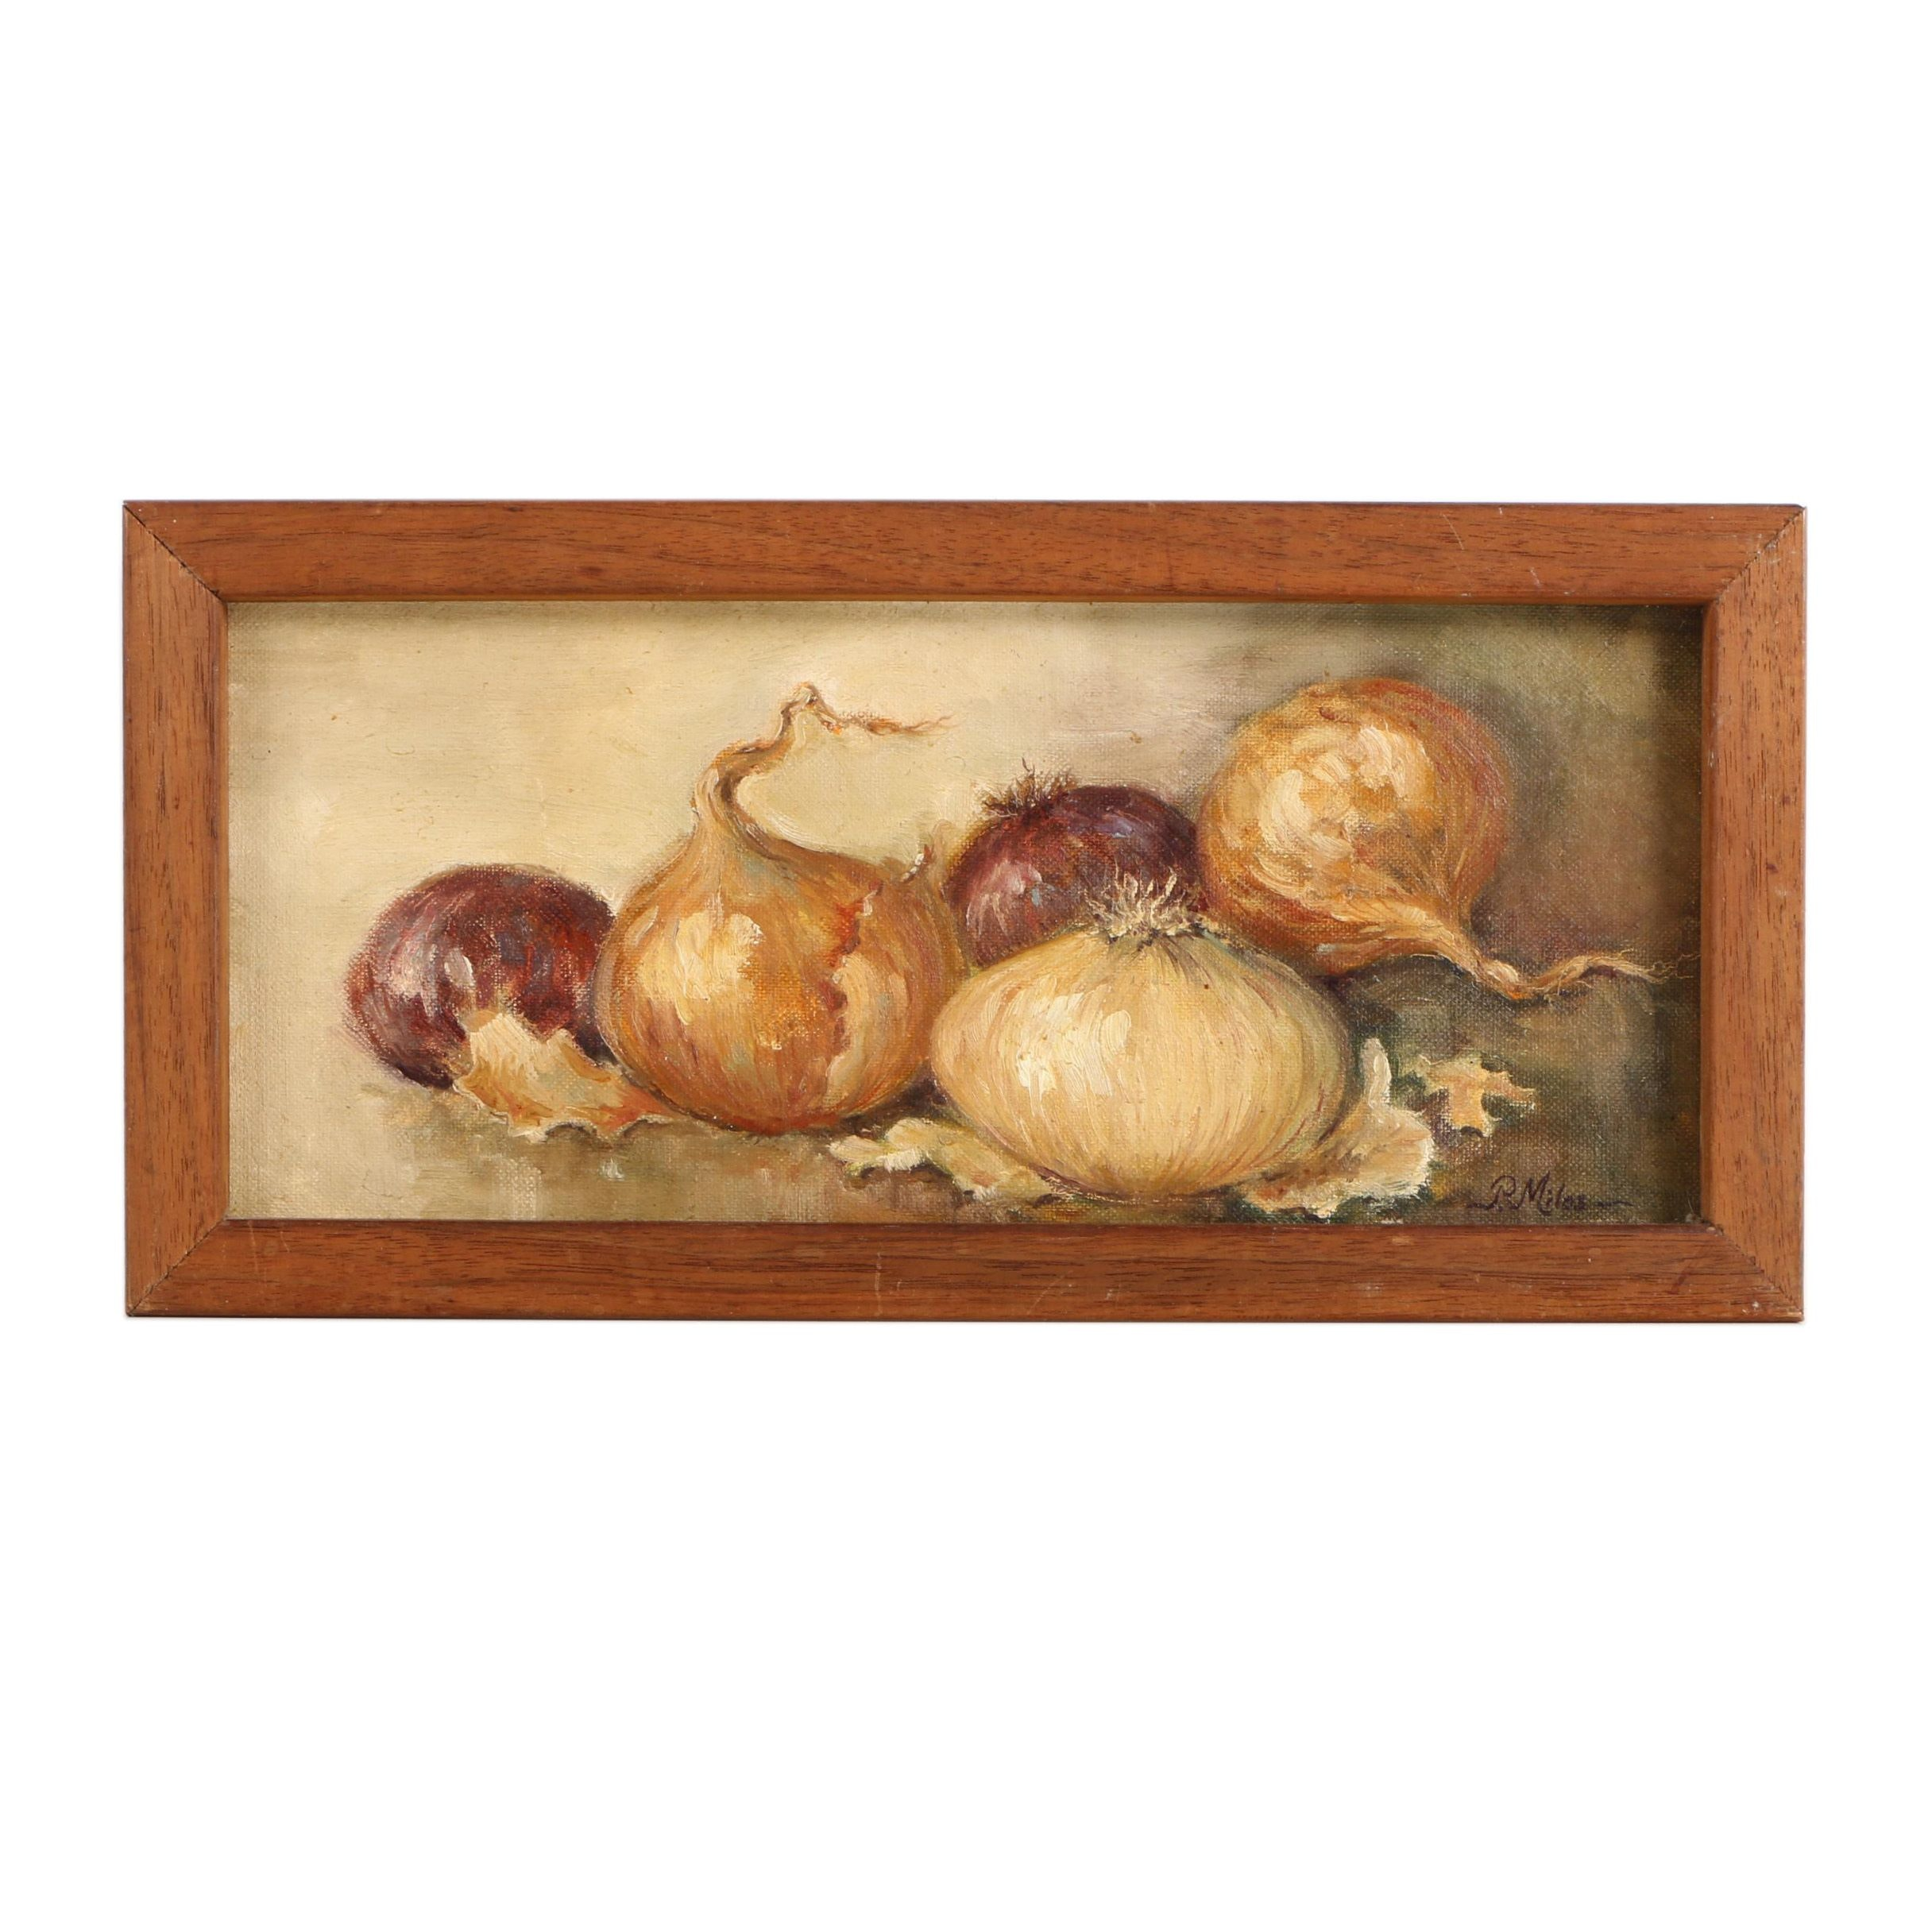 P. Milos Oil Still Life Painting on Canvas Board